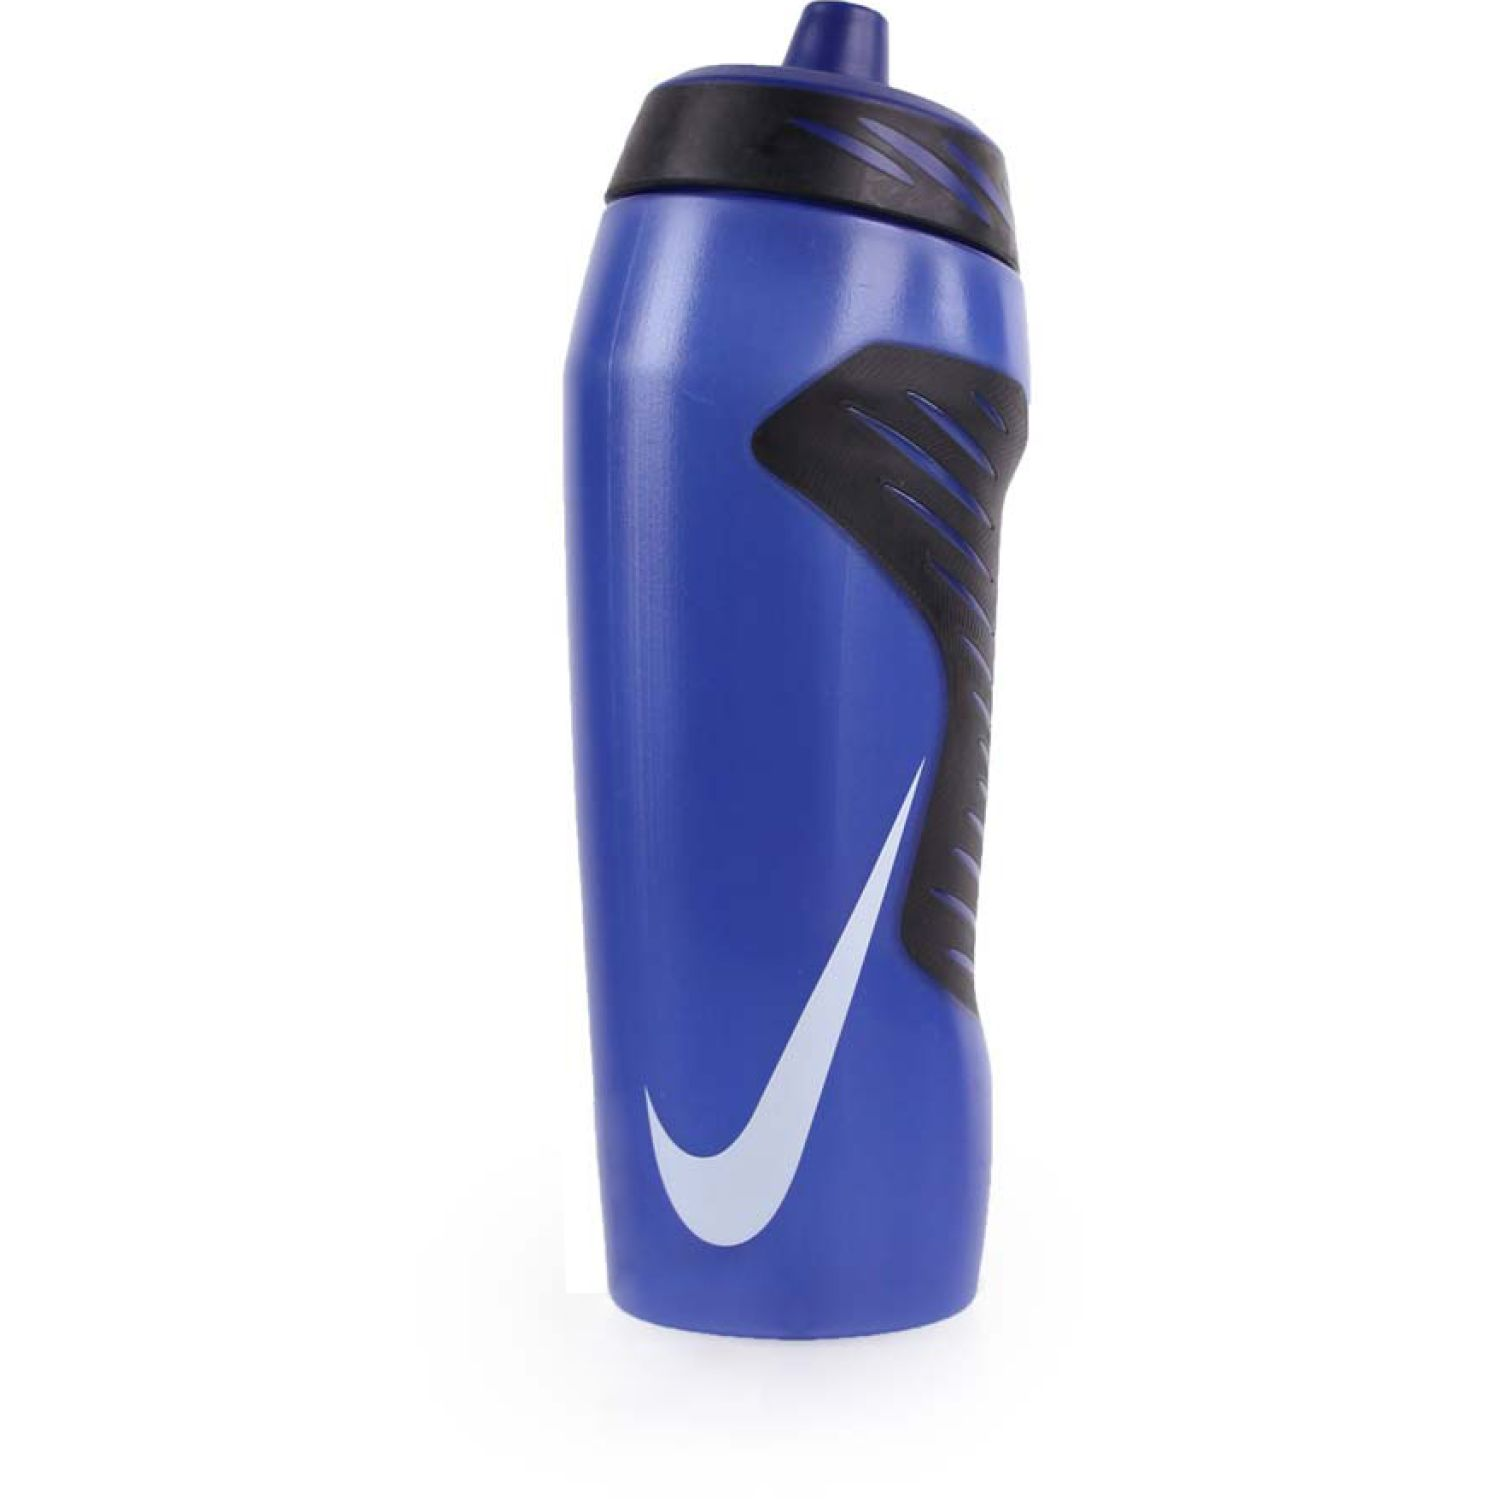 Nike nk hyperfuel water bottle 24oz Azul / negro Botellas de agua